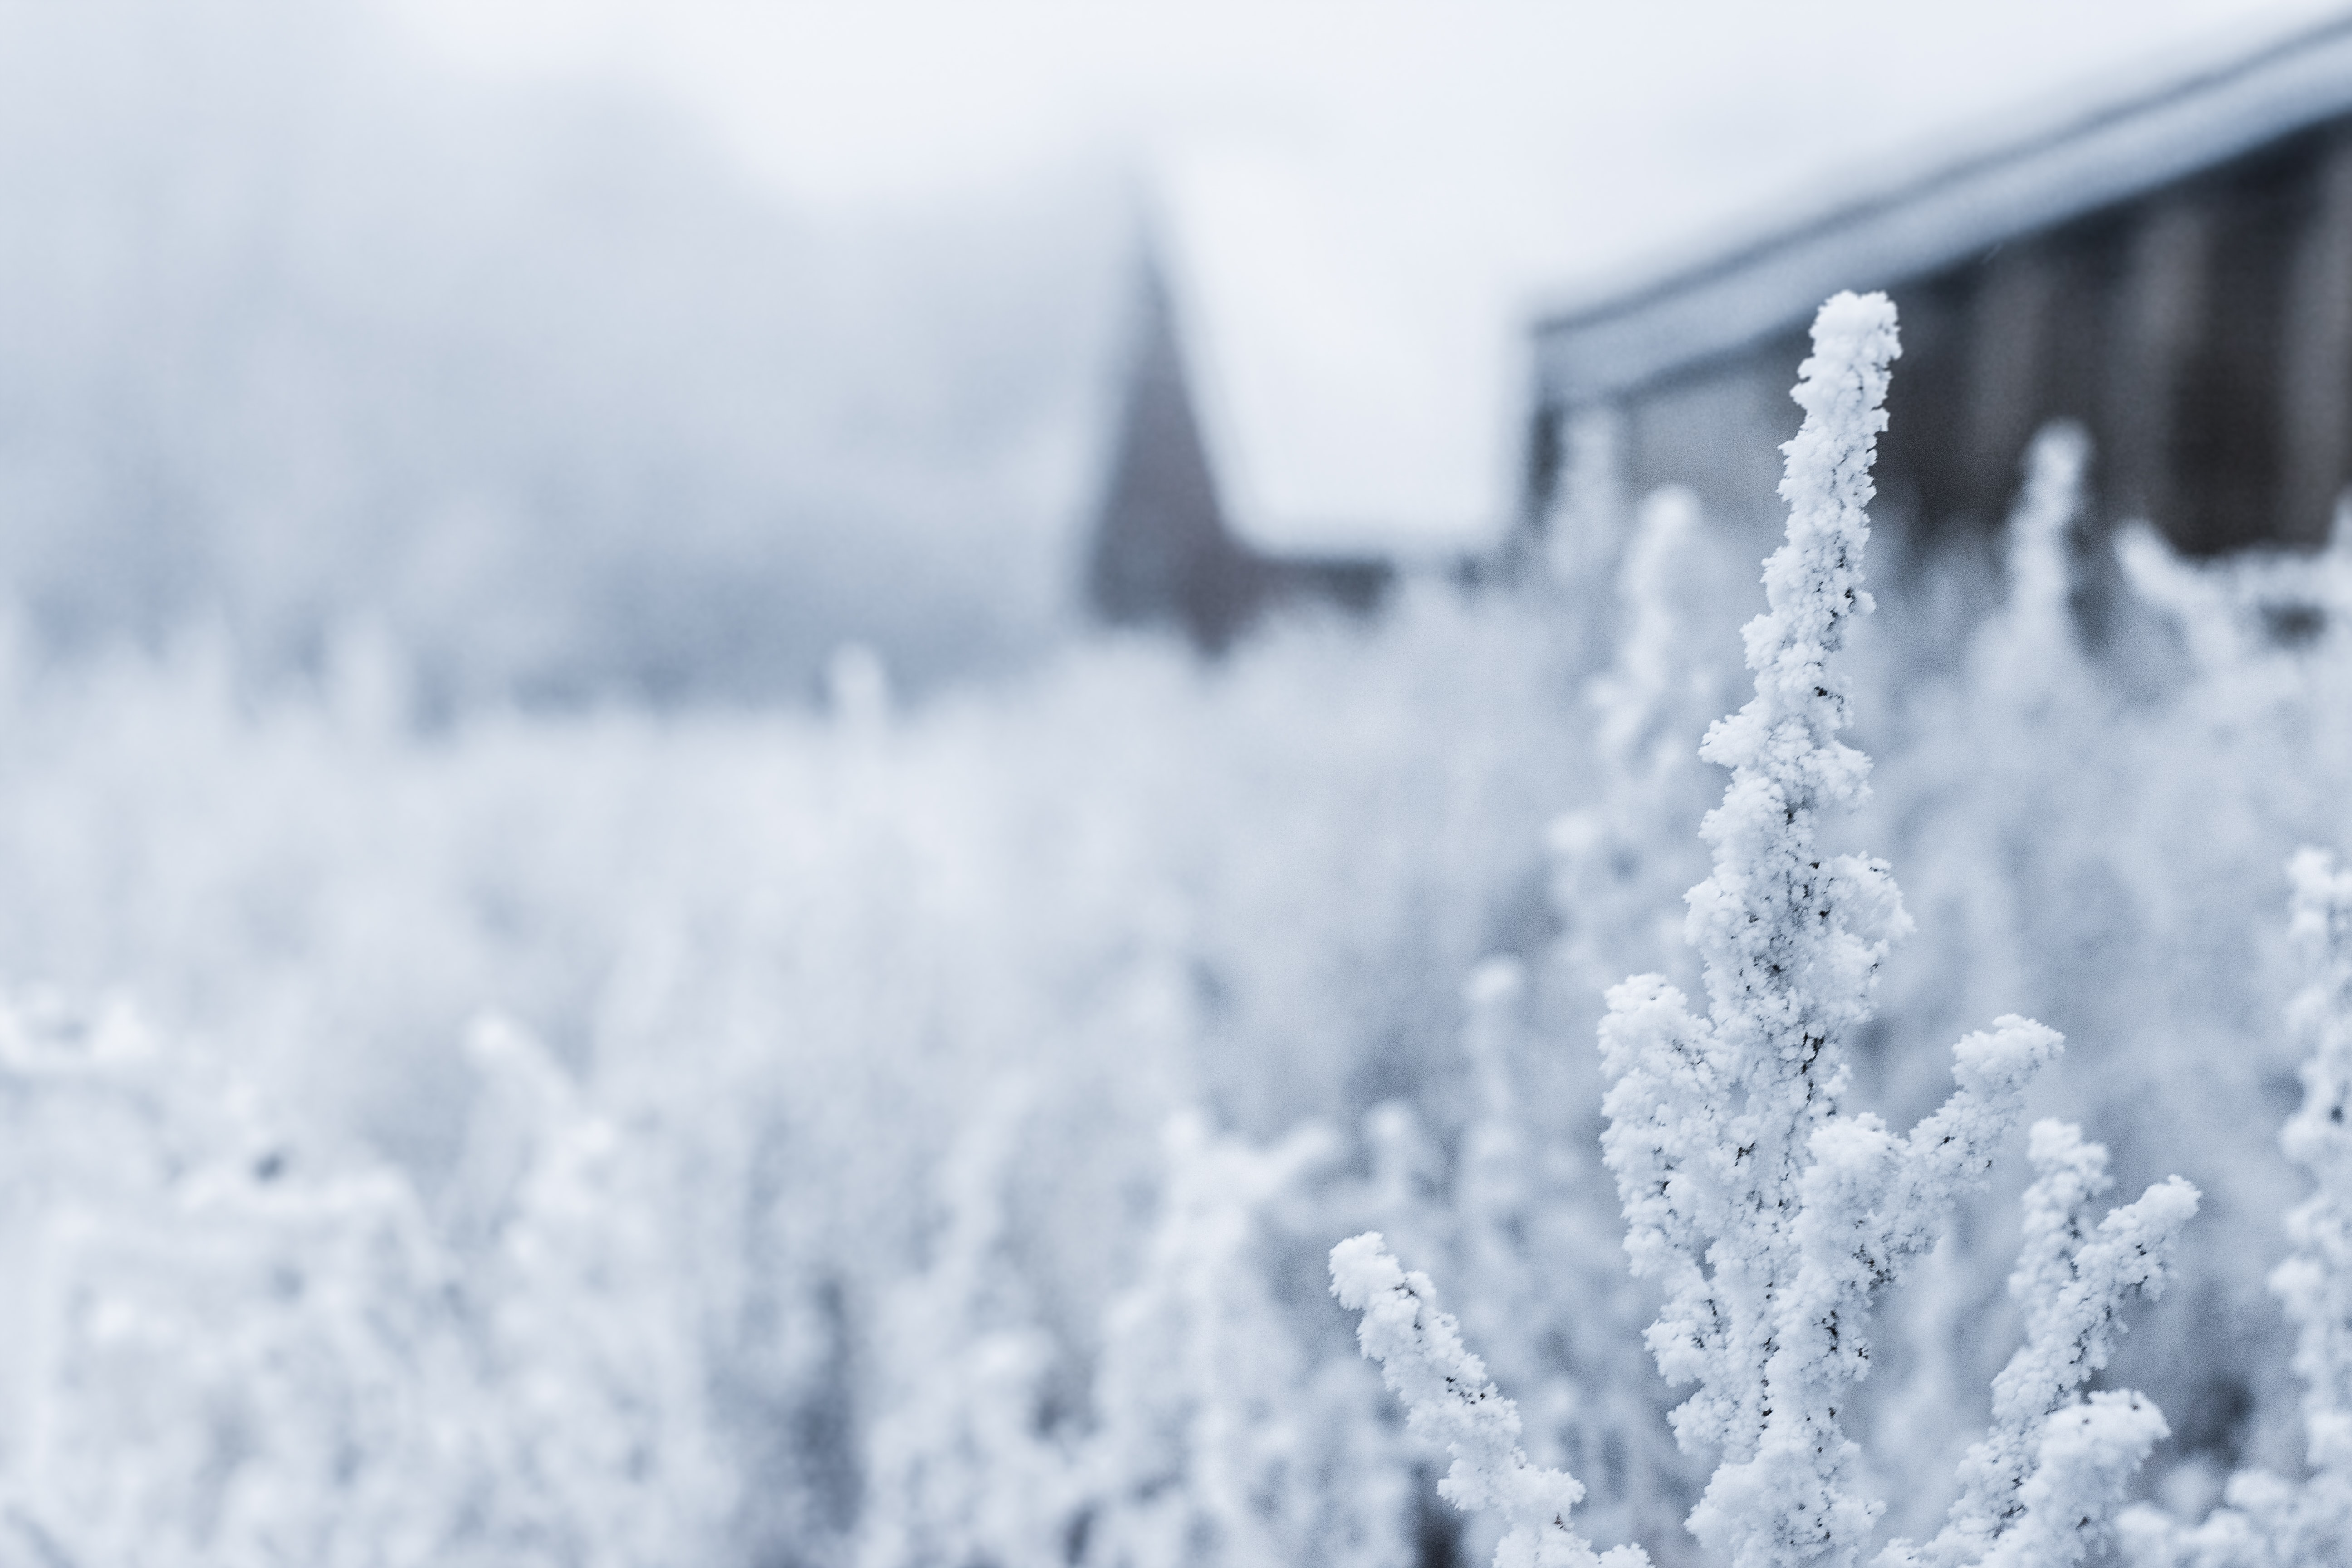 A field of plants covered in snow with part of a house visible in the background